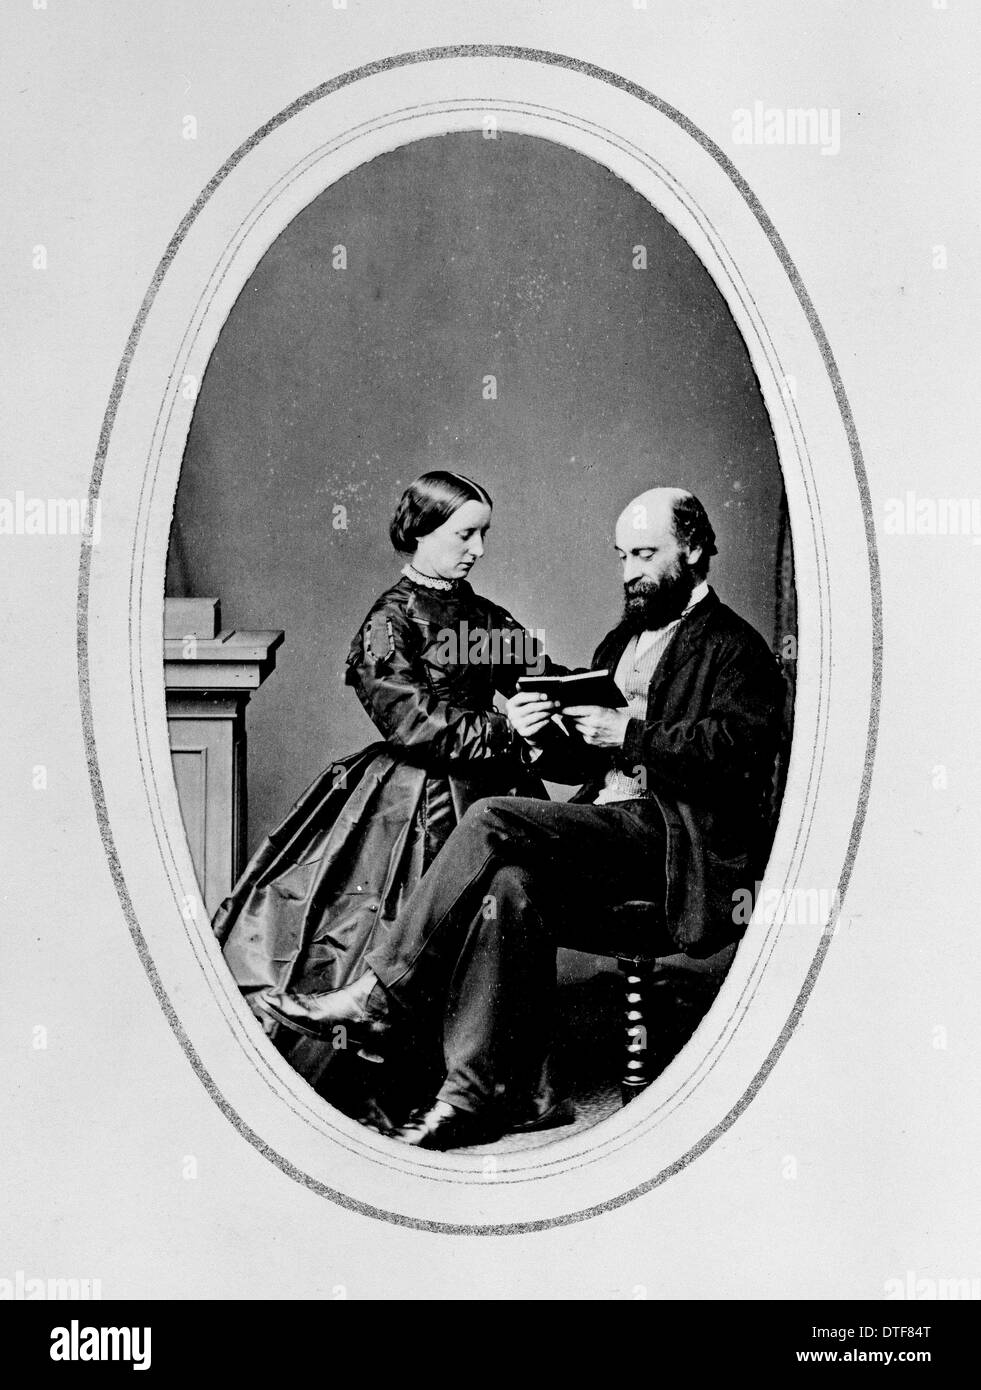 George and H.G. Baynes - Stock Image